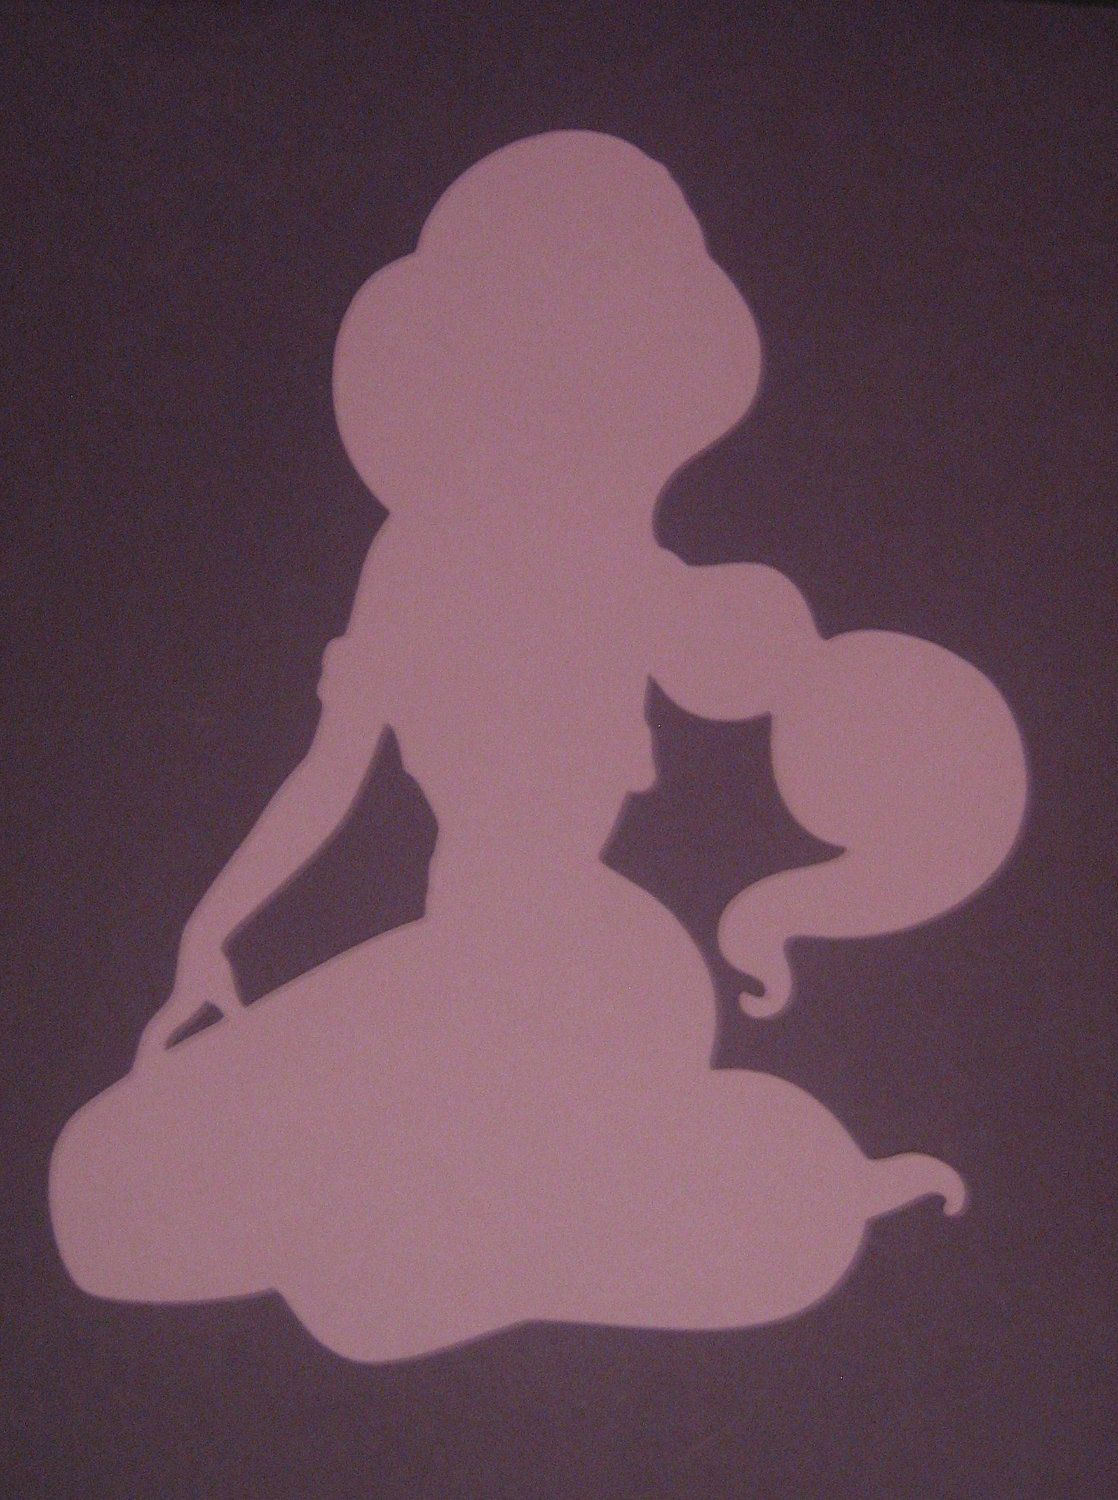 Disney Princess Jasmine Silhouettes for framing, birthday parties, invitations, banners, scrapbooking. $5.00, via Etsy.